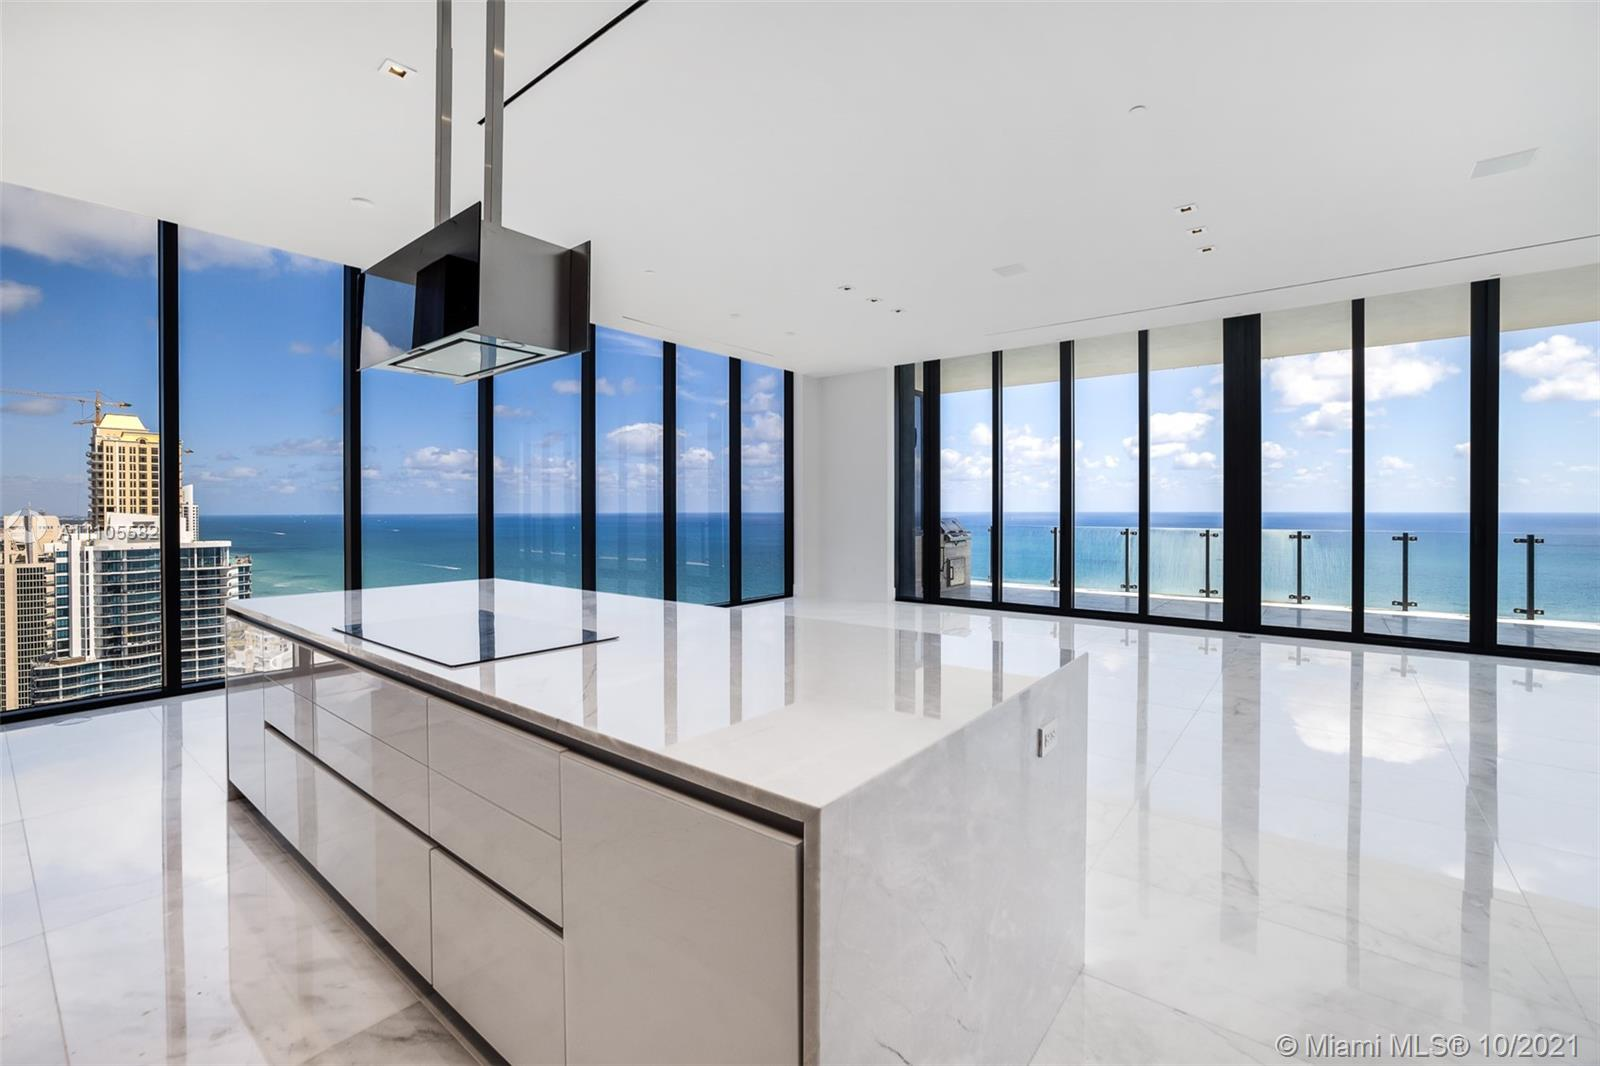 17141 Collins Ave, Unit #3901 Luxury Real Estate